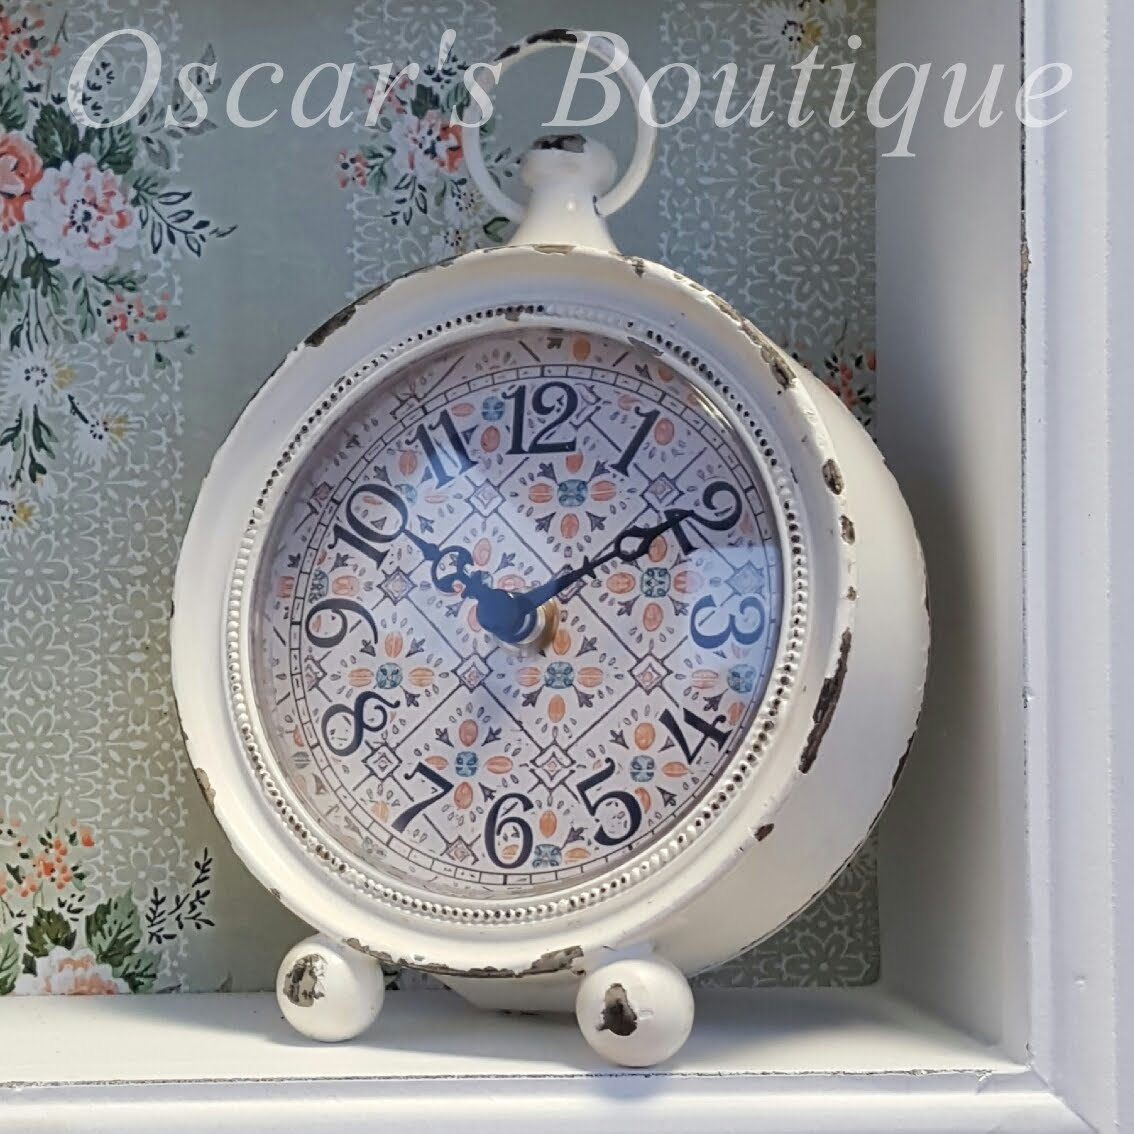 Oscar's Boutique